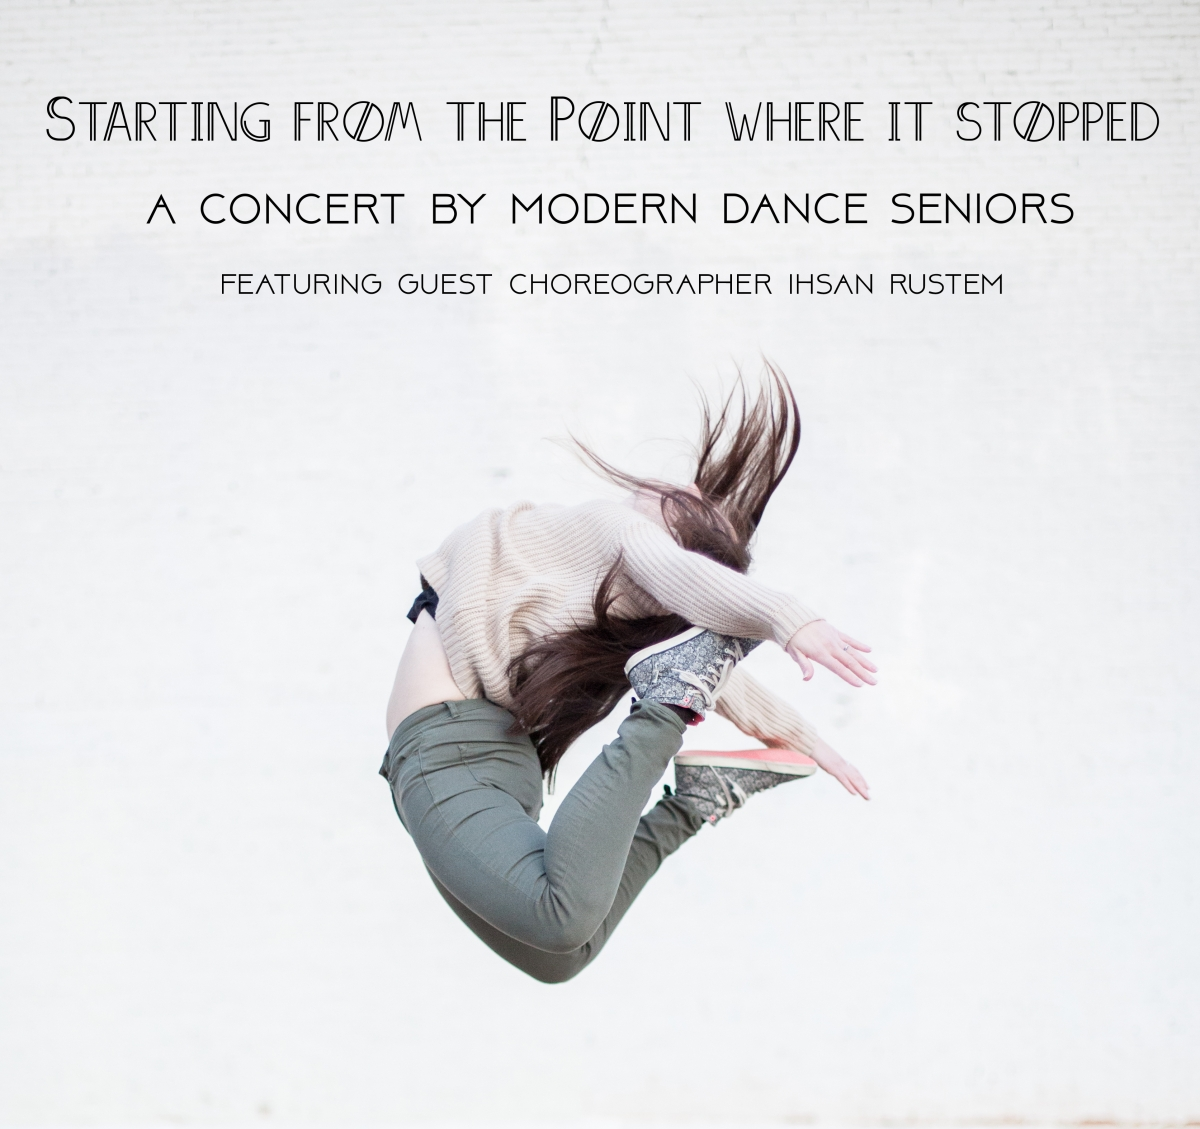 """Starting from the Point Where It Stopped"": The Modern Dance Senior Concert"